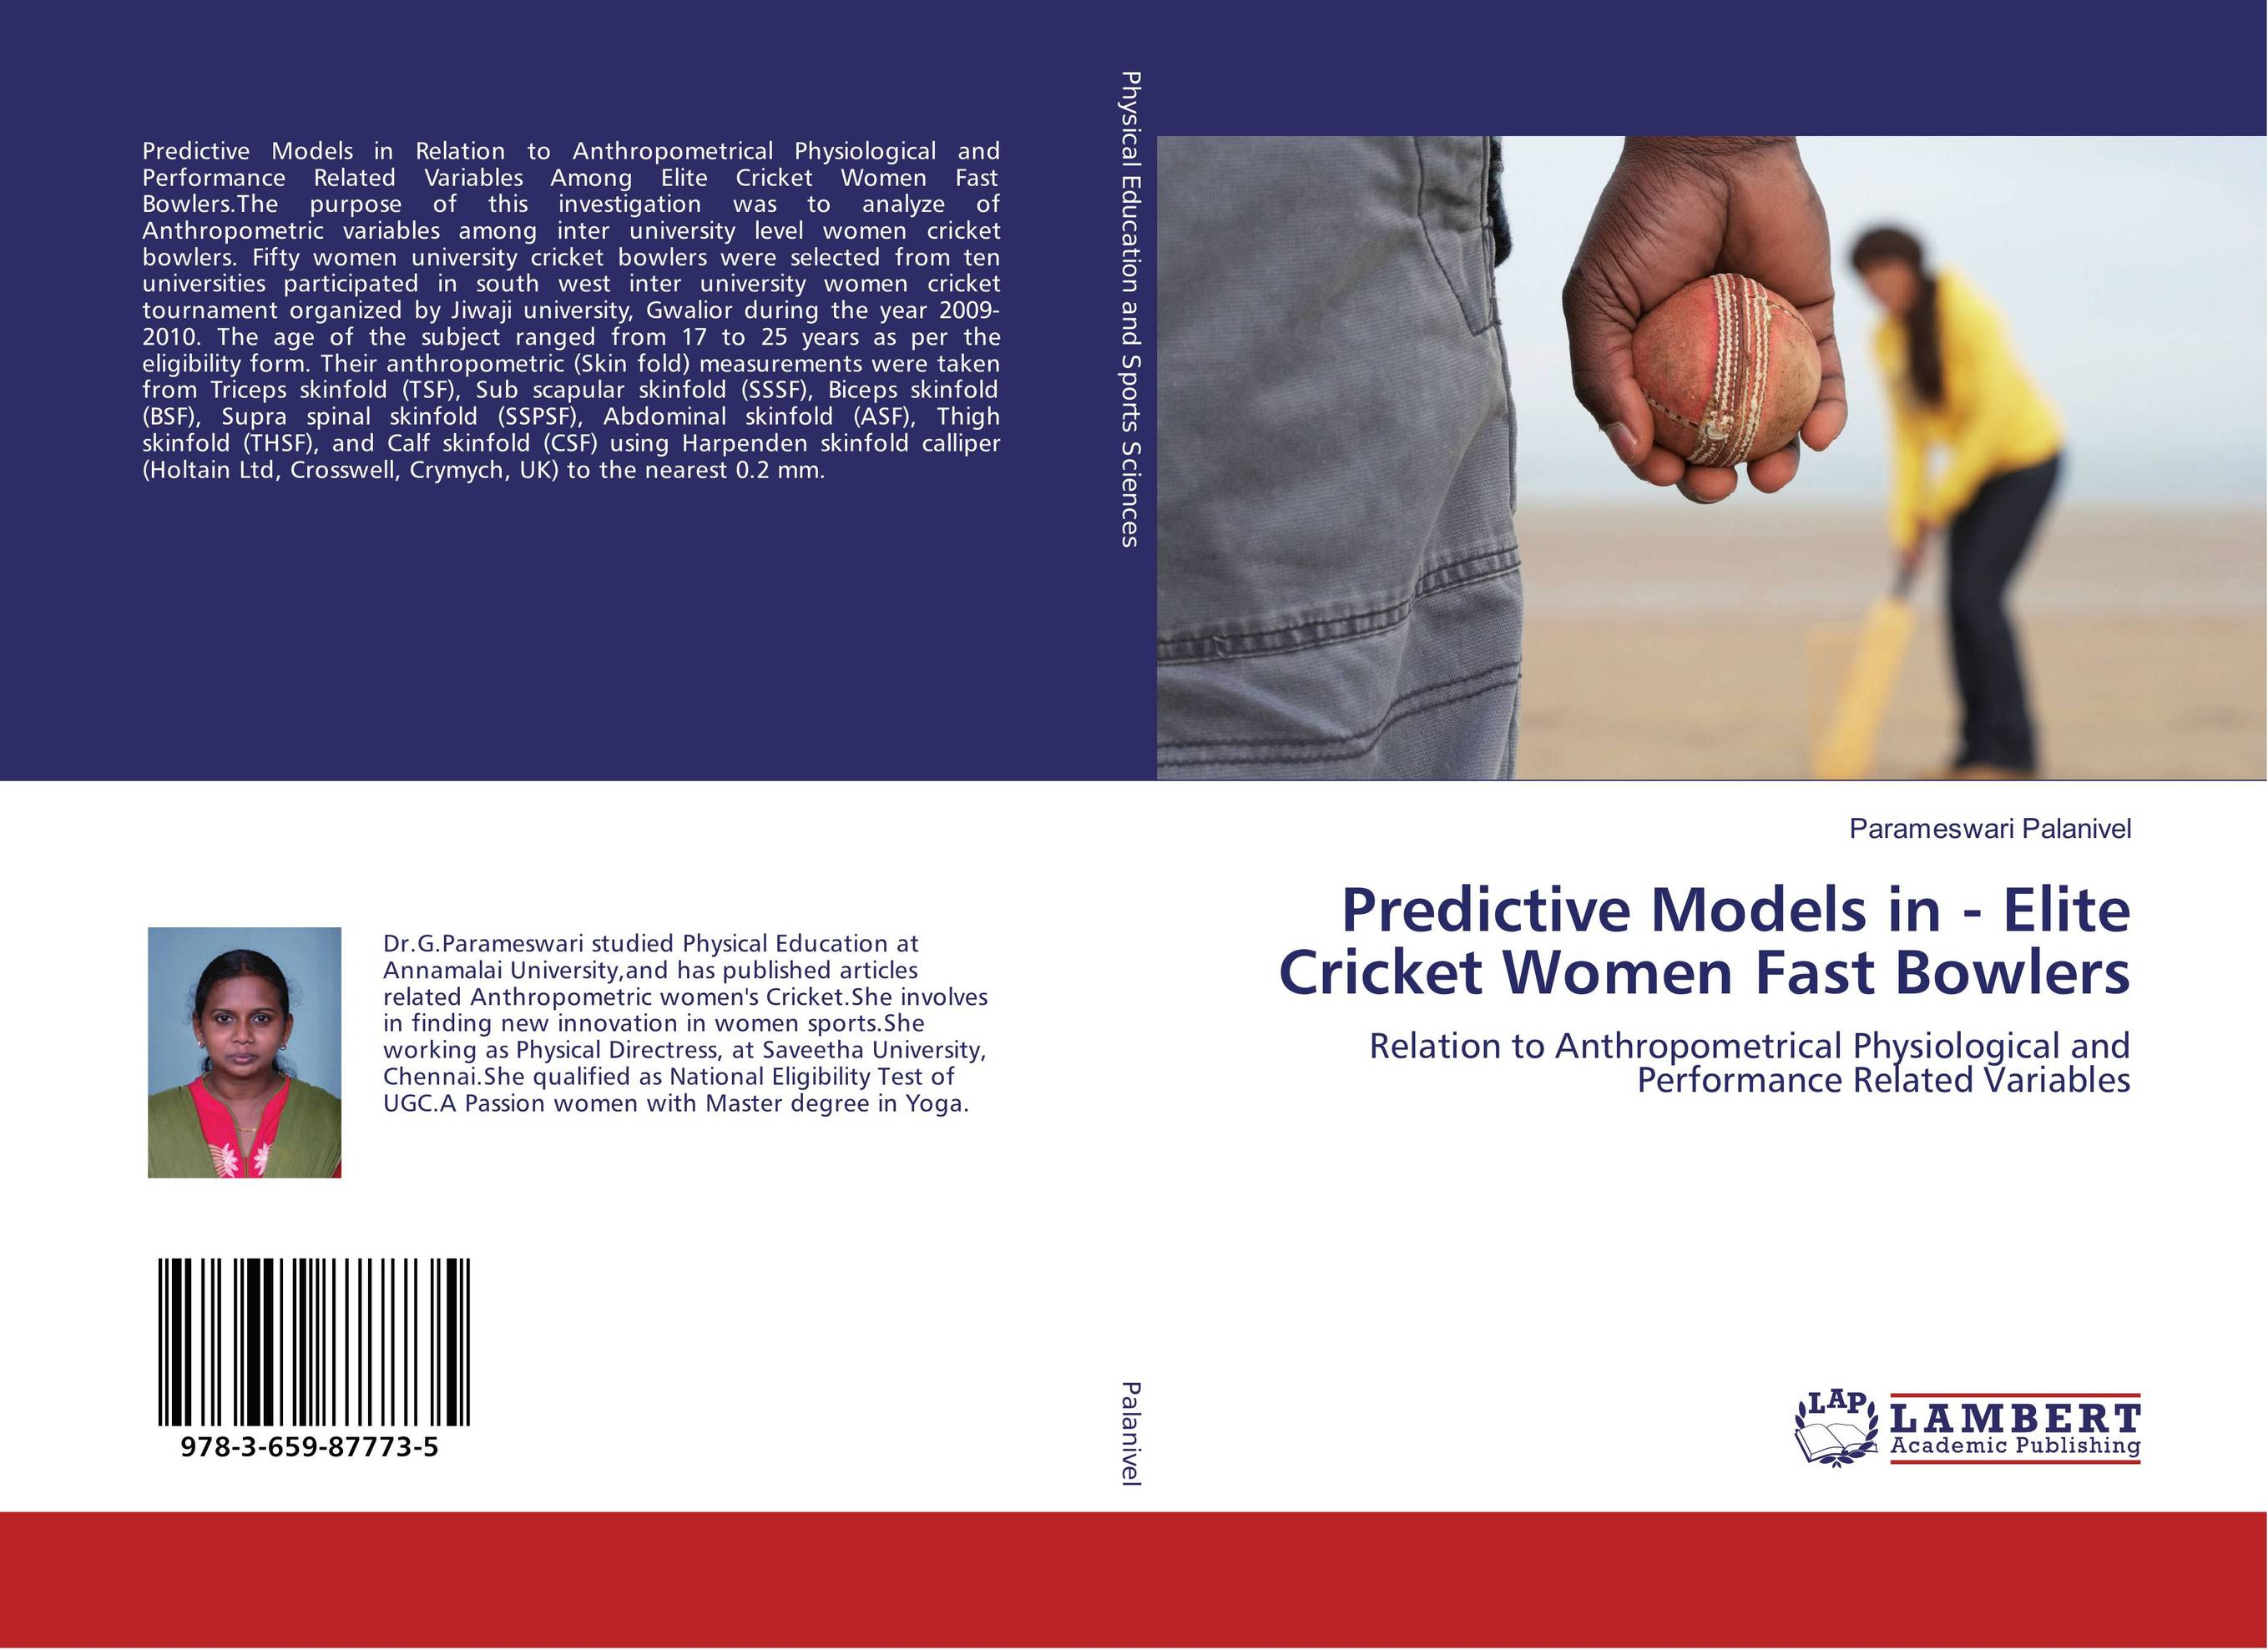 Predictive Models in - Elite Cricket Women Fast Bowlers dieting practices among ahfad university for women students